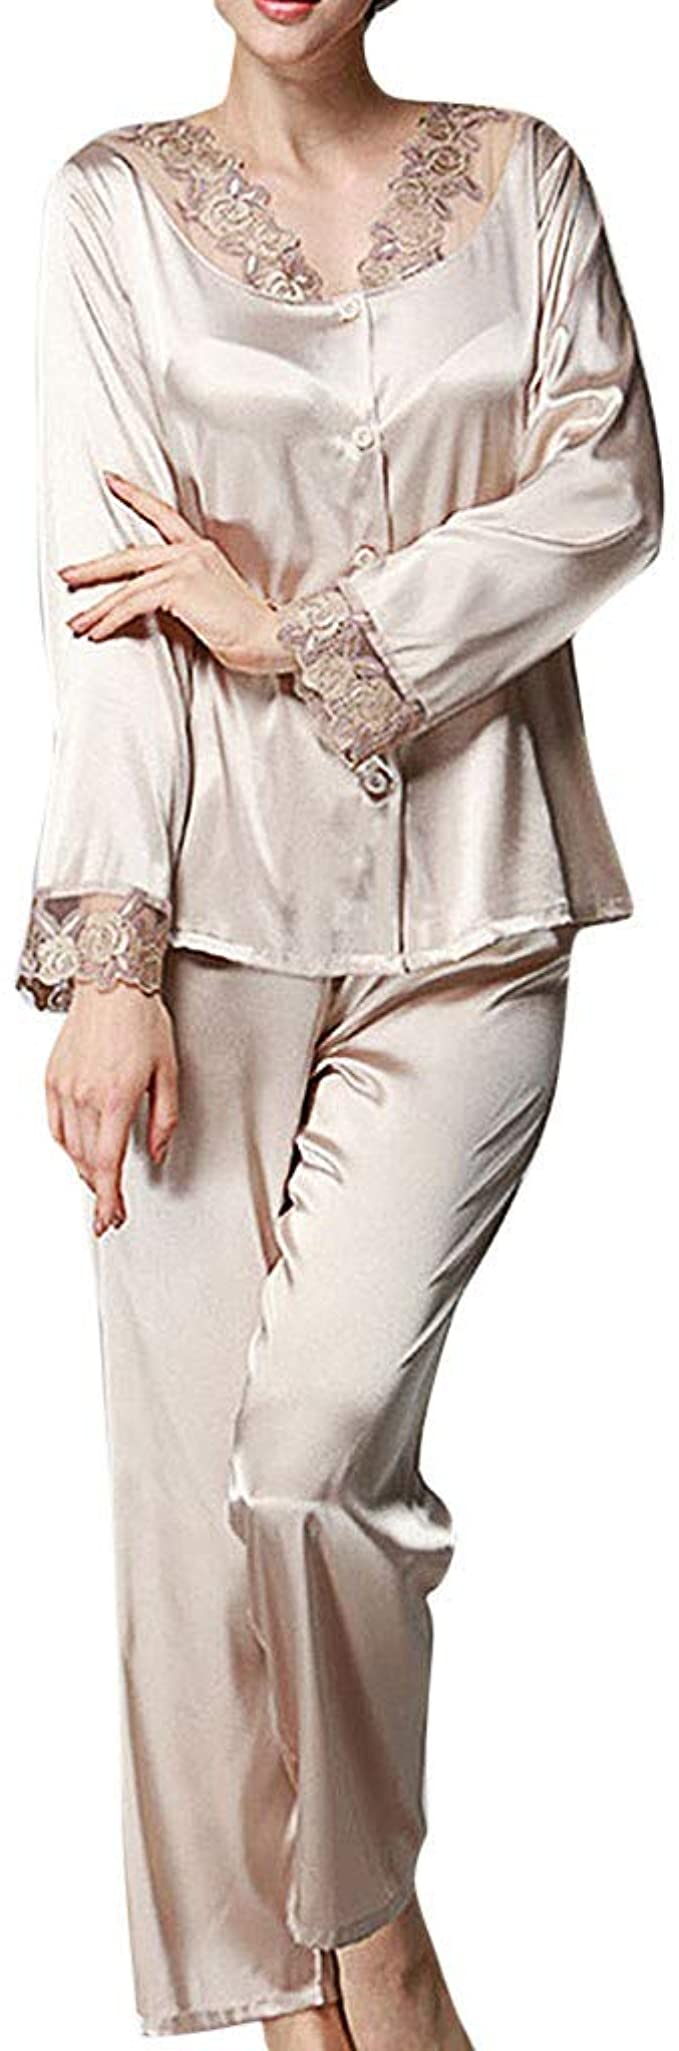 Vintage Nightgowns, Pajamas, Baby Dolls, Robes waitFOR Ladies 2 Piece Sleepwear Set Long Sleeves Satin Silk Lace Buttons Tops Long Pants Women Nightgown Chemise Underdress Lingerie Night Dress Sleepwear Slim Fit Slip Pajama £12.39 AT vintagedancer.com